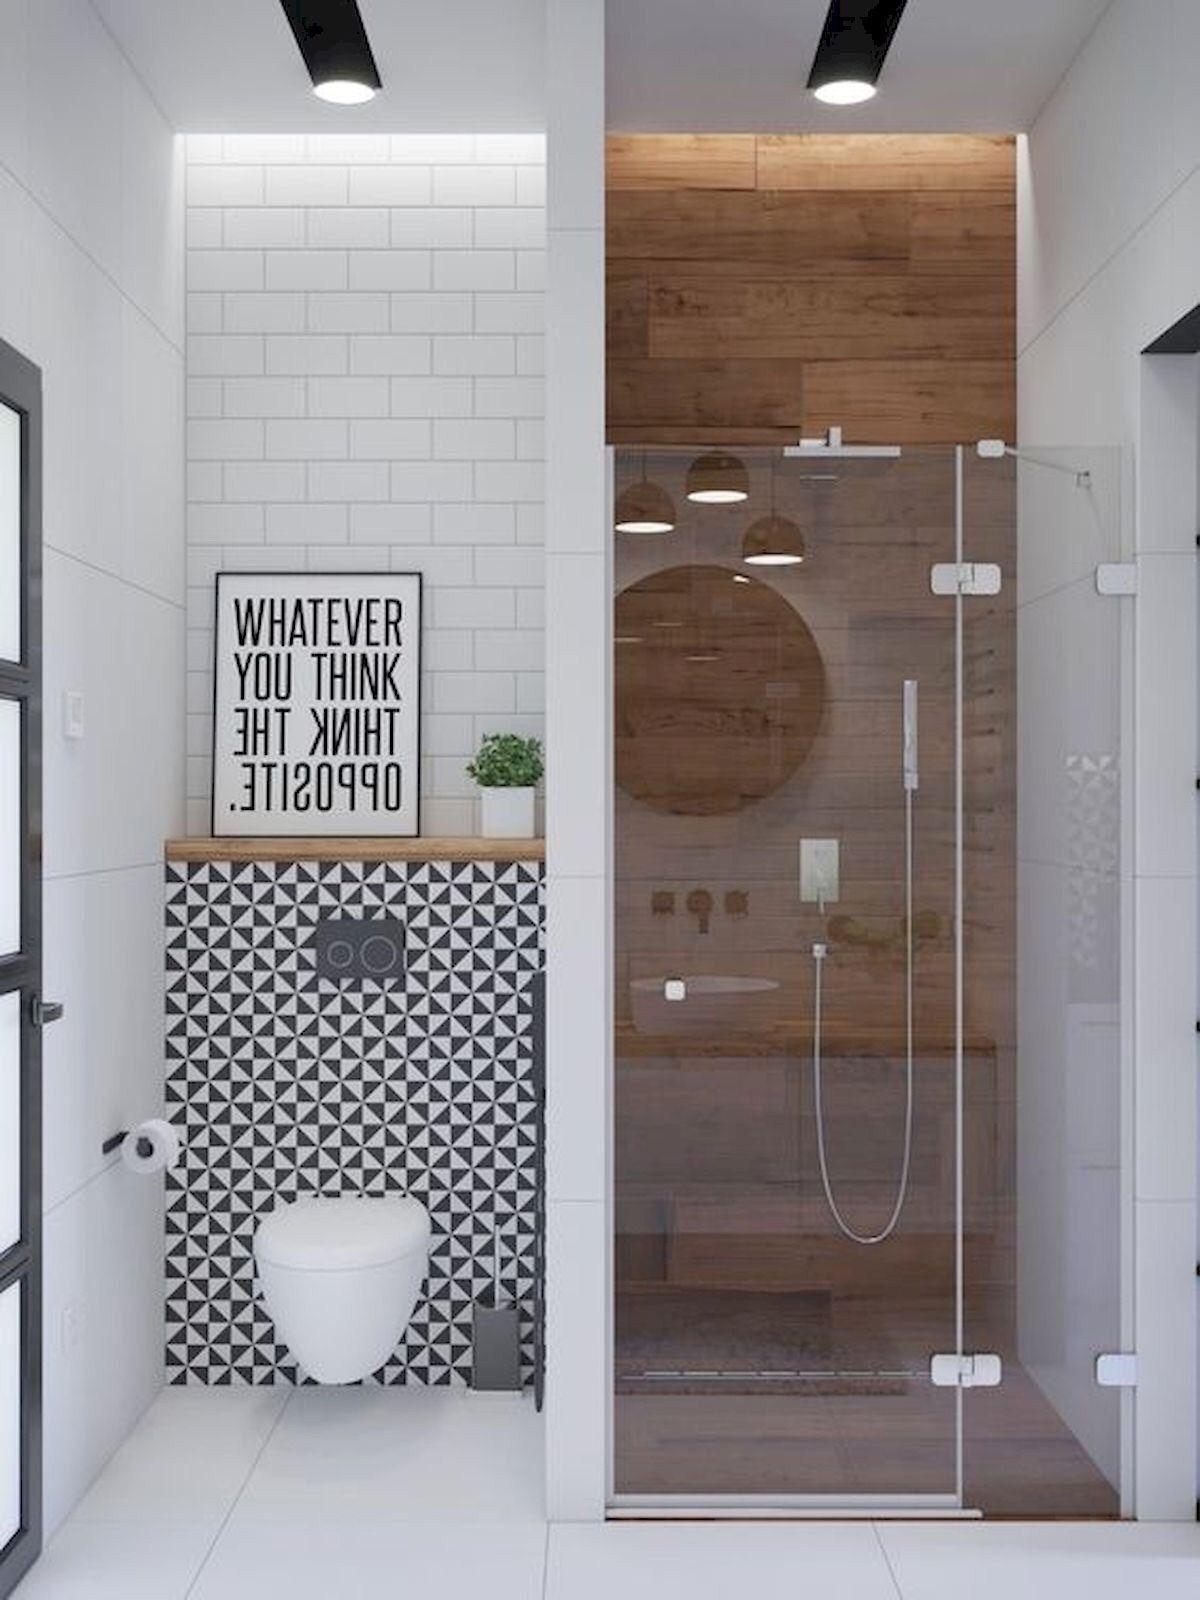 14 Stunning Design Ideas For Small Bathrooms With Images Small